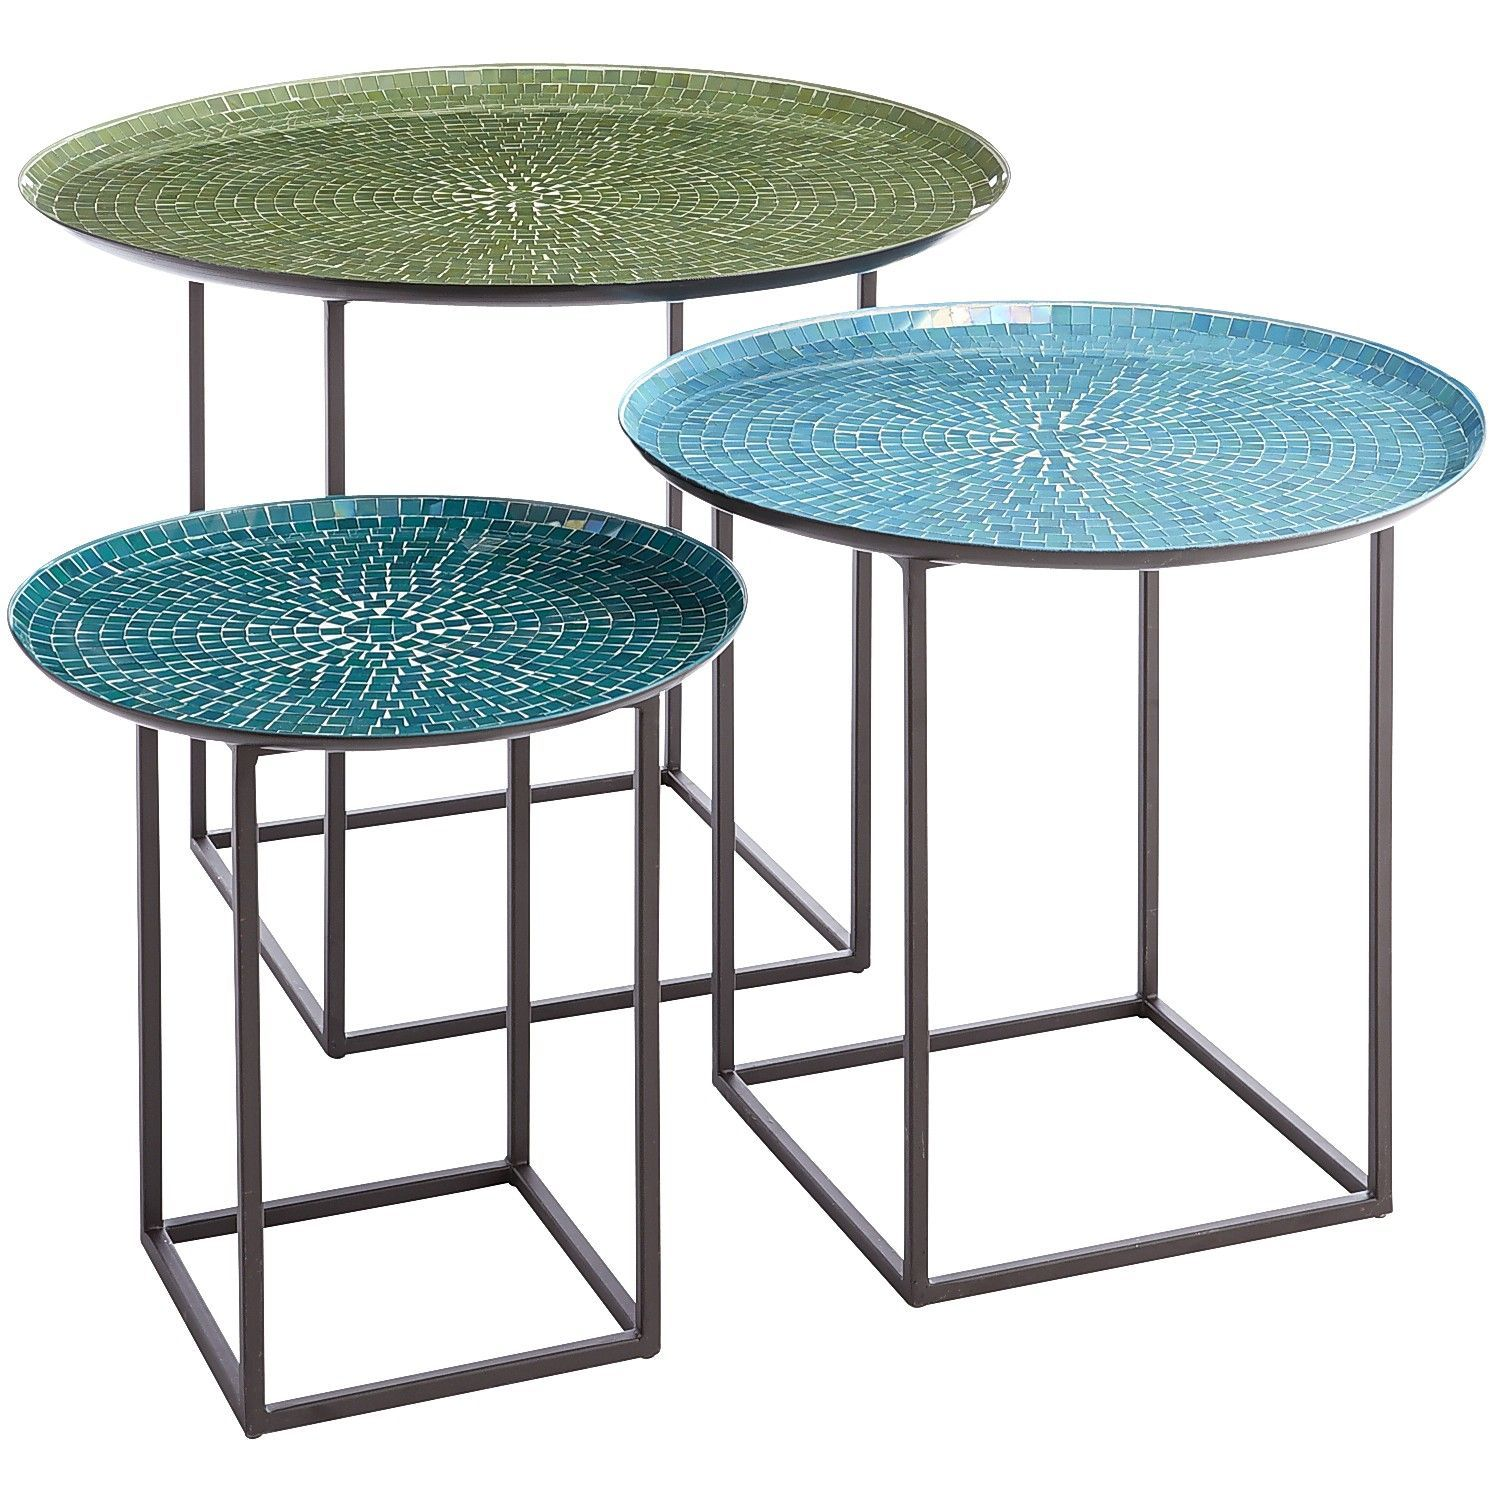 annabelle blue piece mosaic coffee table set home improvement unique outdoor accent tables vinyl floor door strip antique dale tiffany lamps bedroom furniture packages modern wood